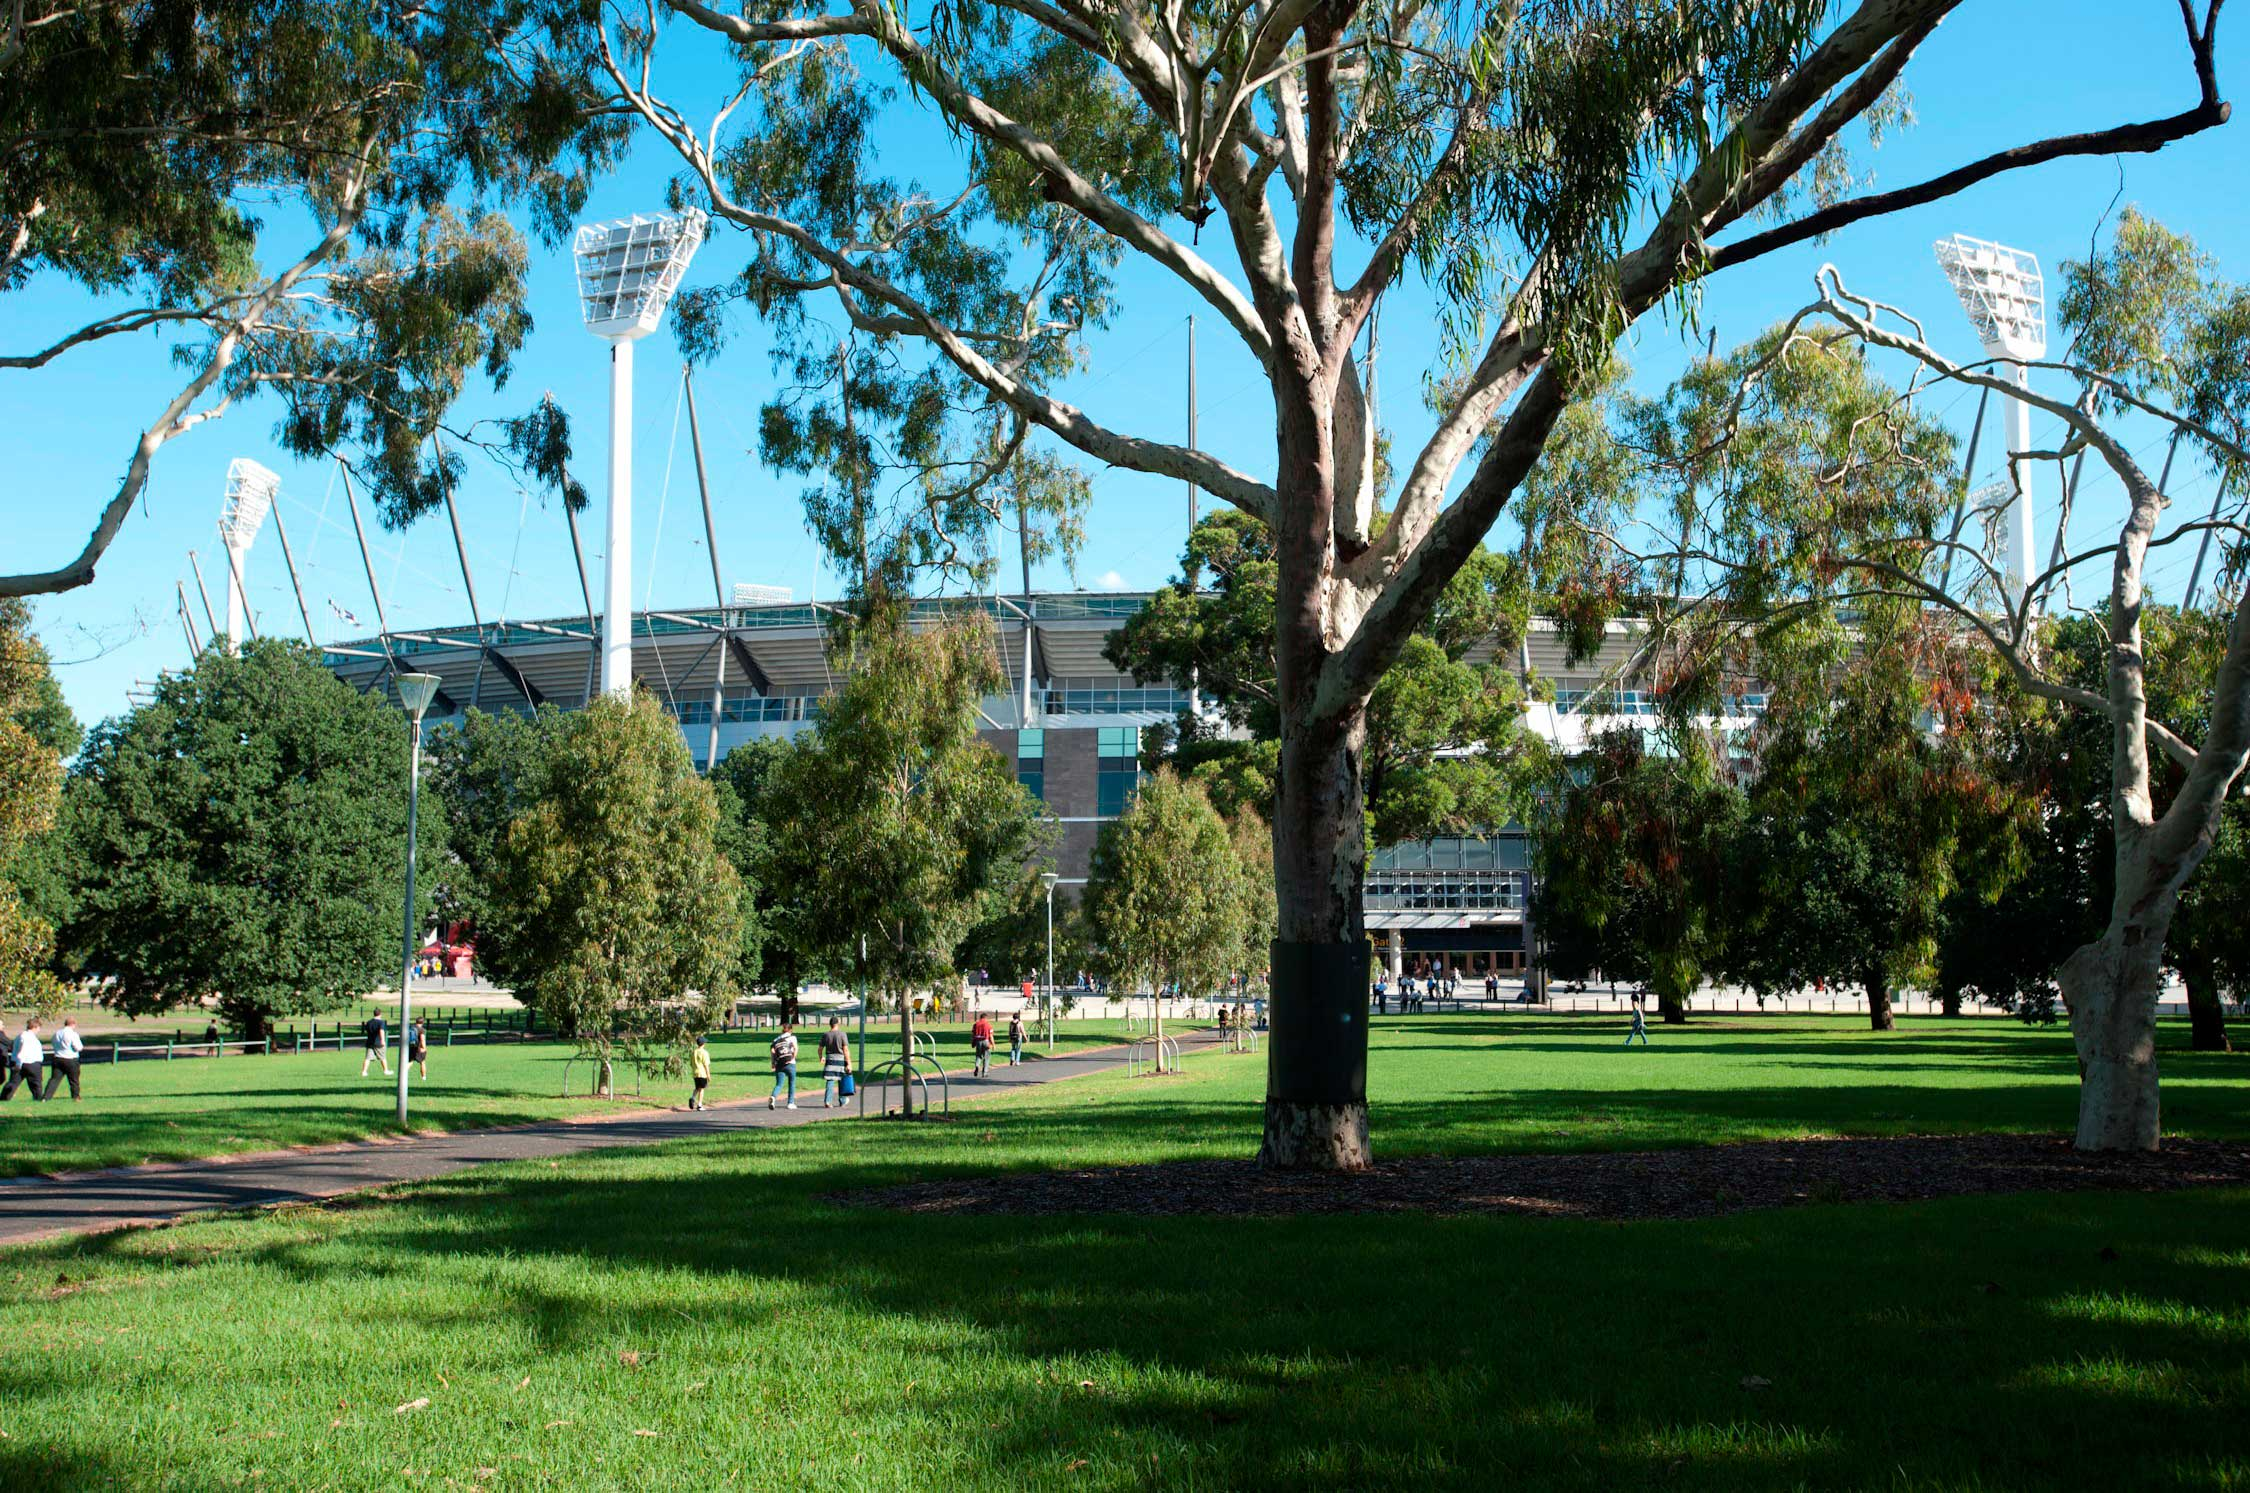 A view of the MCG from Yarra Park.